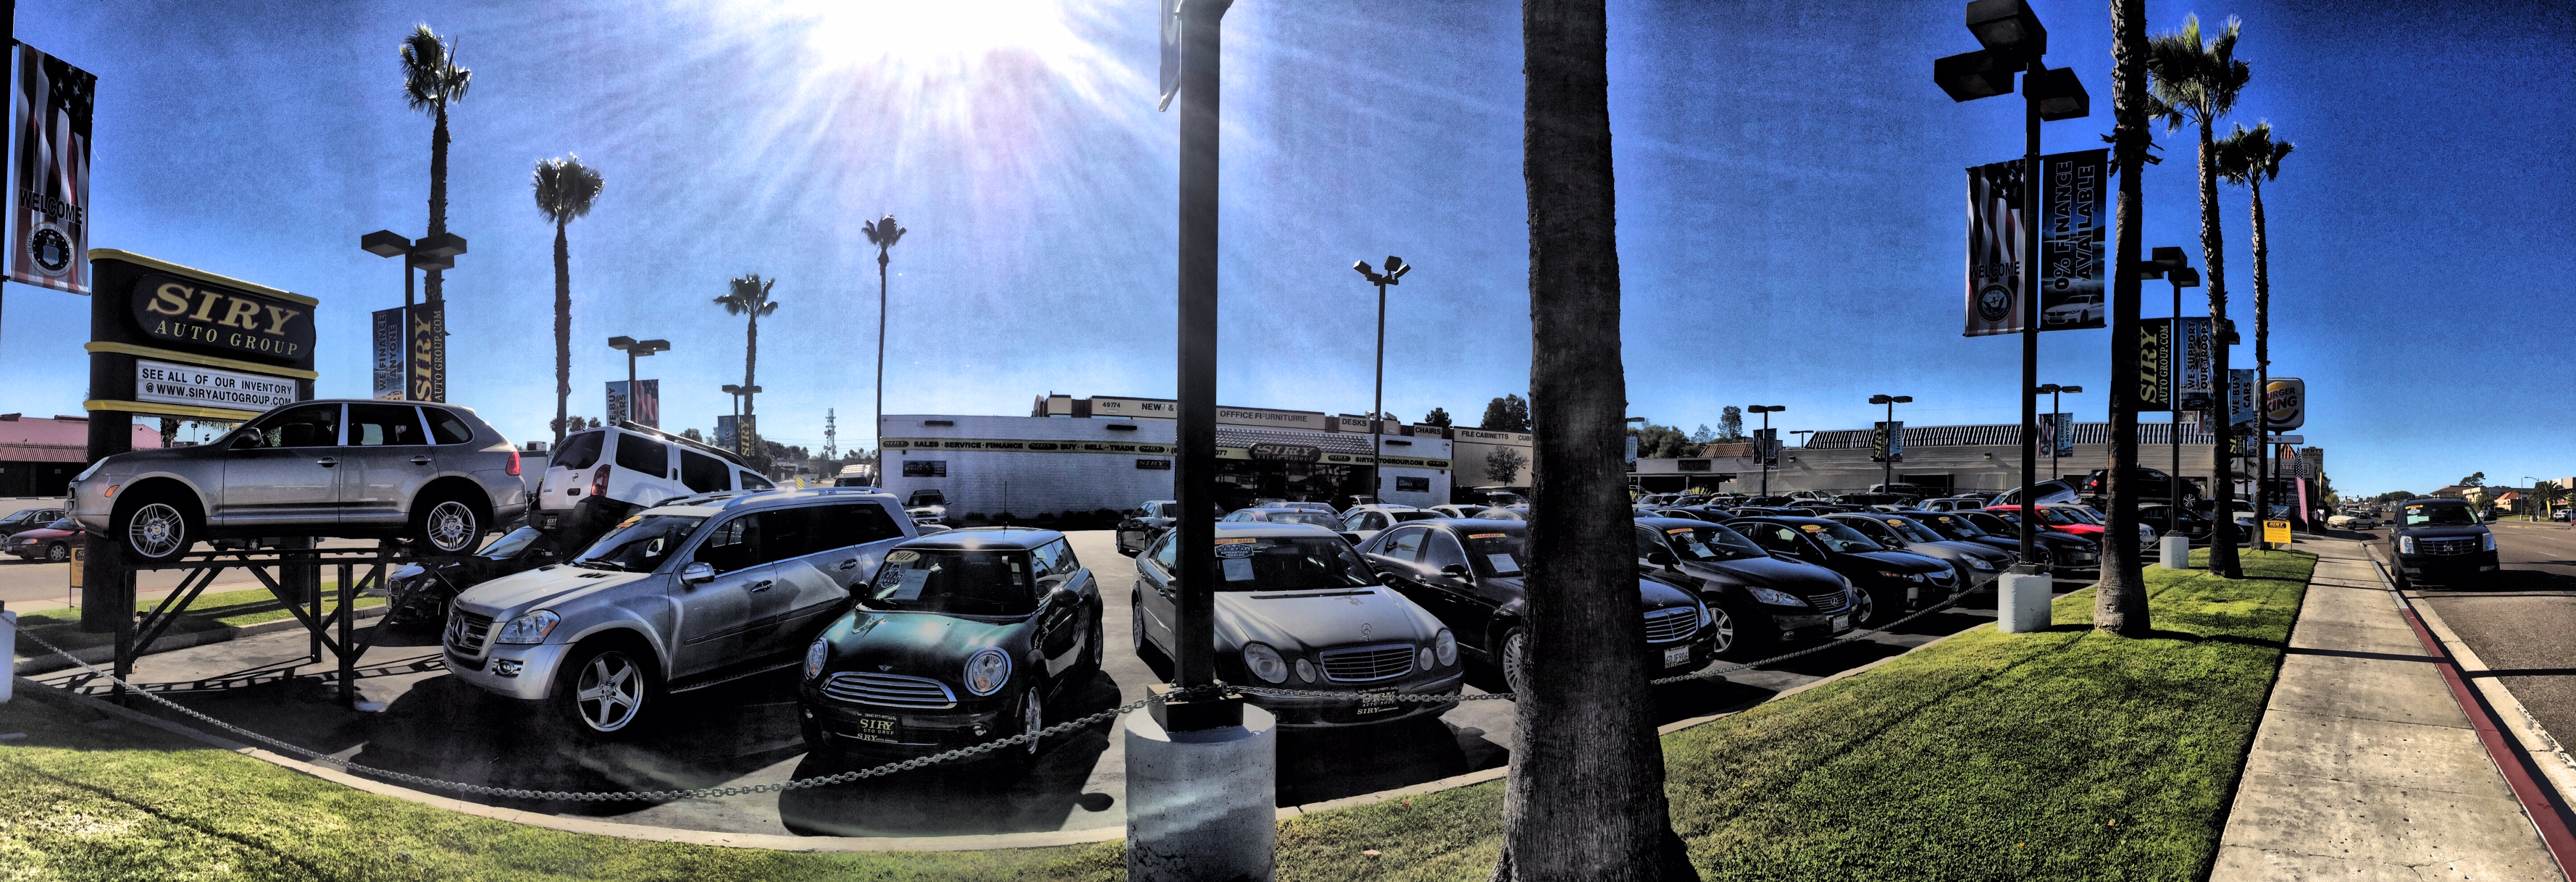 Siry Auto Group in San Diego, CA, photo #12